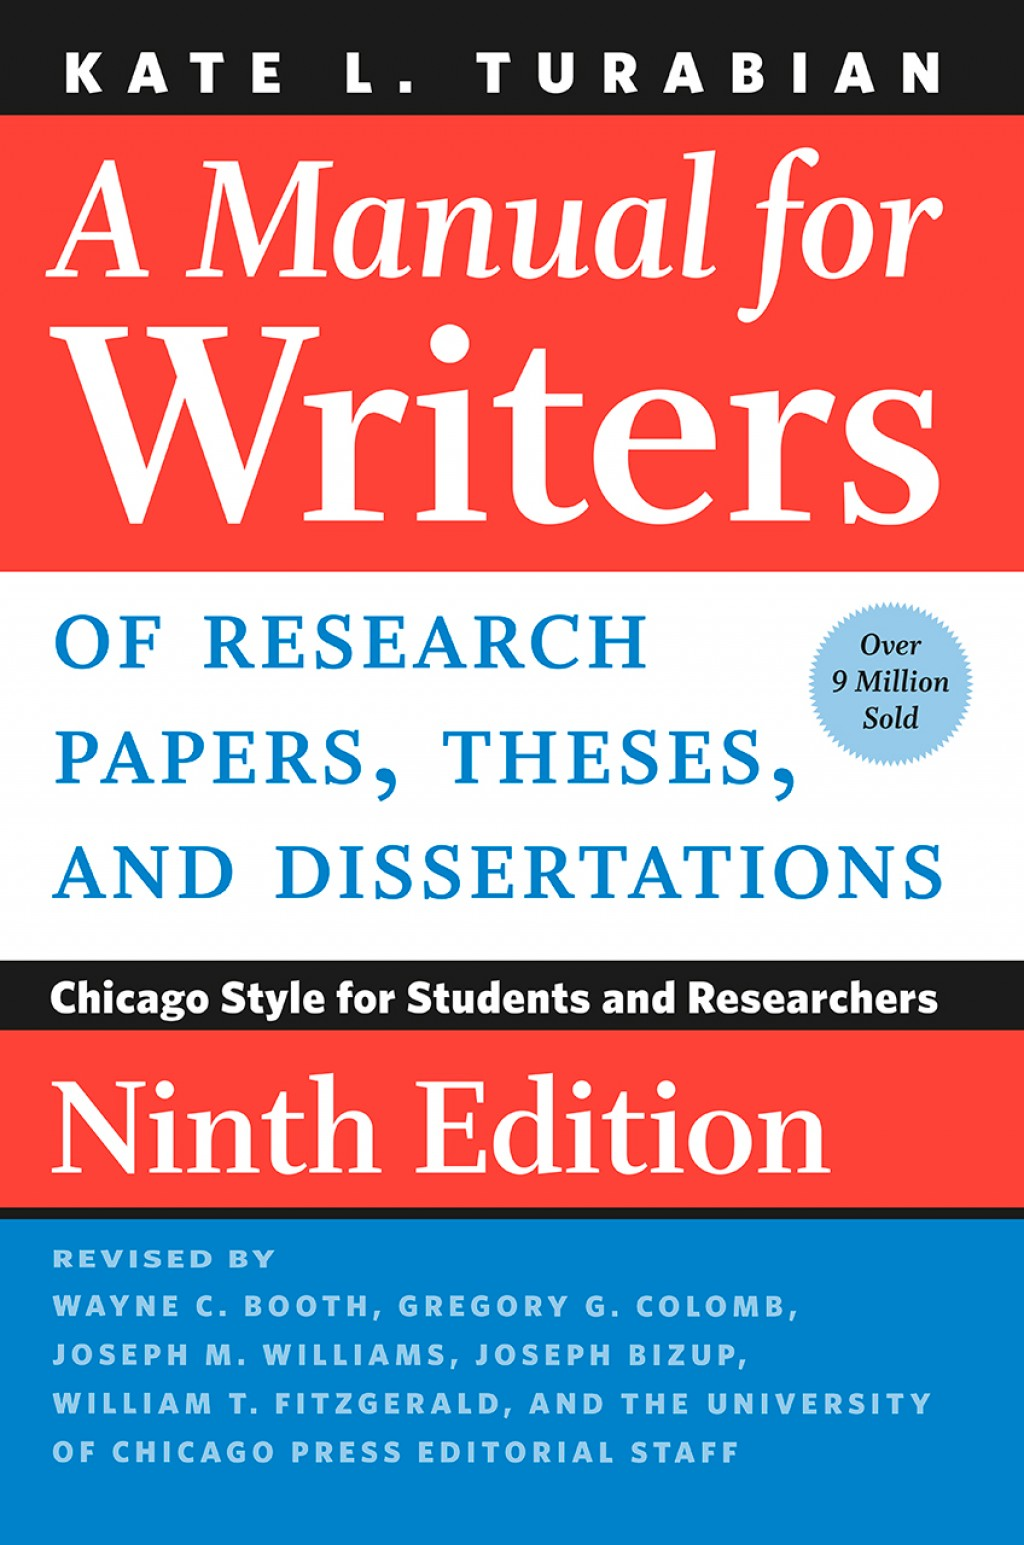 003 Manual For Writers Of Researchs Theses And Dissertations 8th Edition Staggering A Research Papers Pdf Large